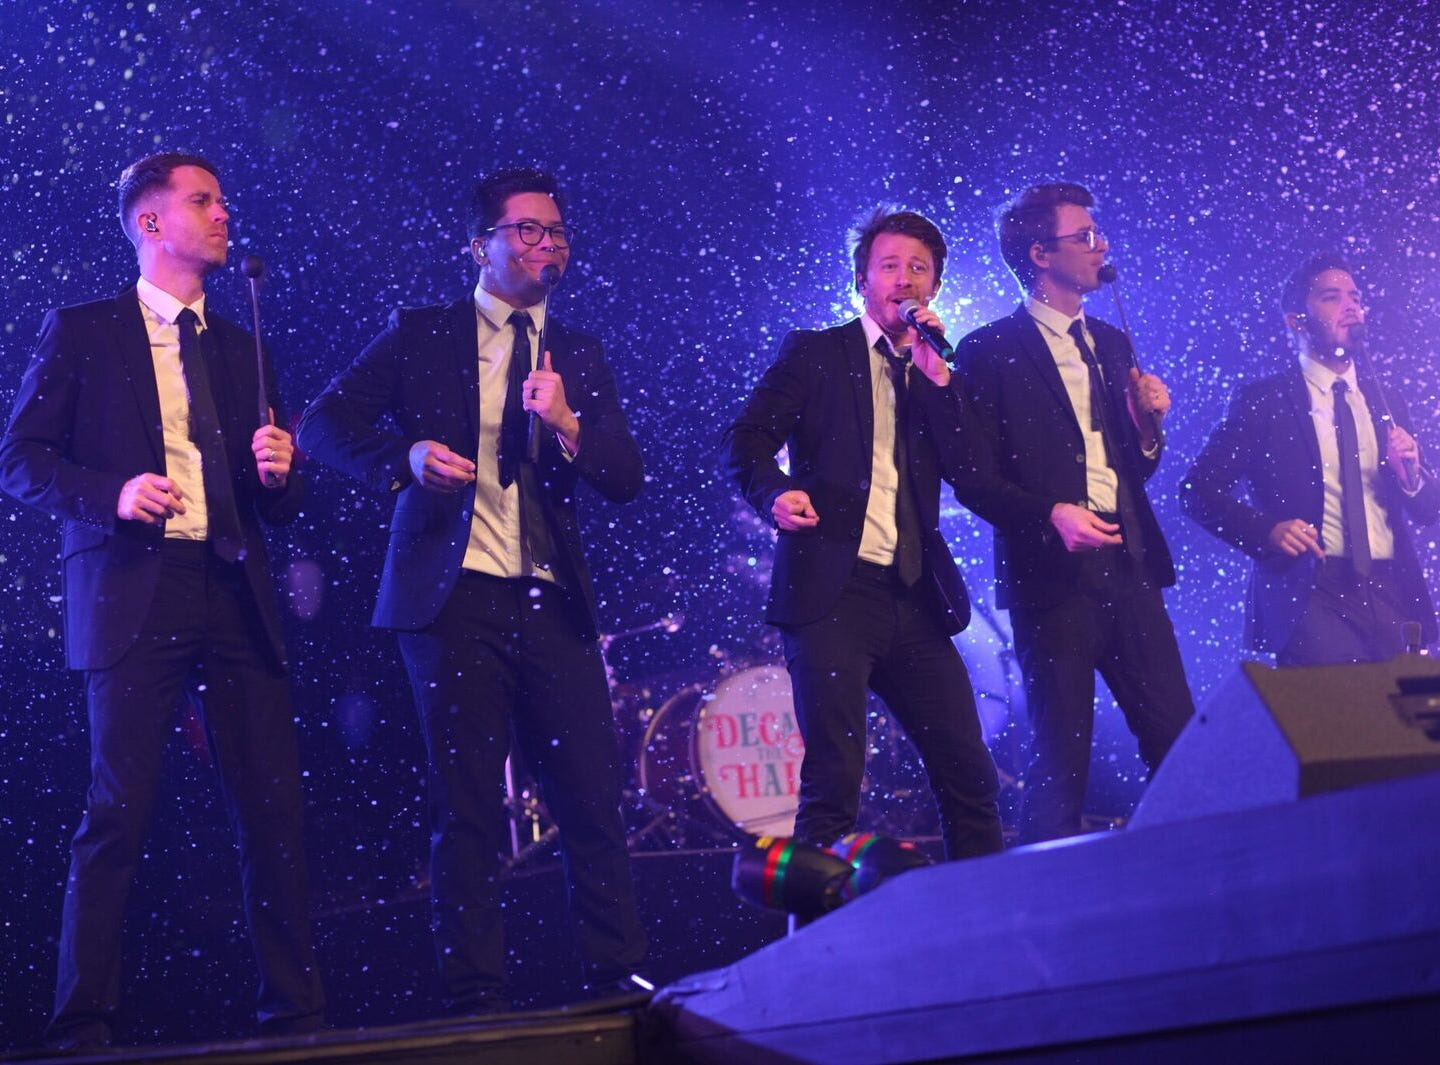 Tenth Avenue North will bring its 'Decade the Halls' Christmas tour to RiverGlen Christian Church in Waukesha Dec. 2.